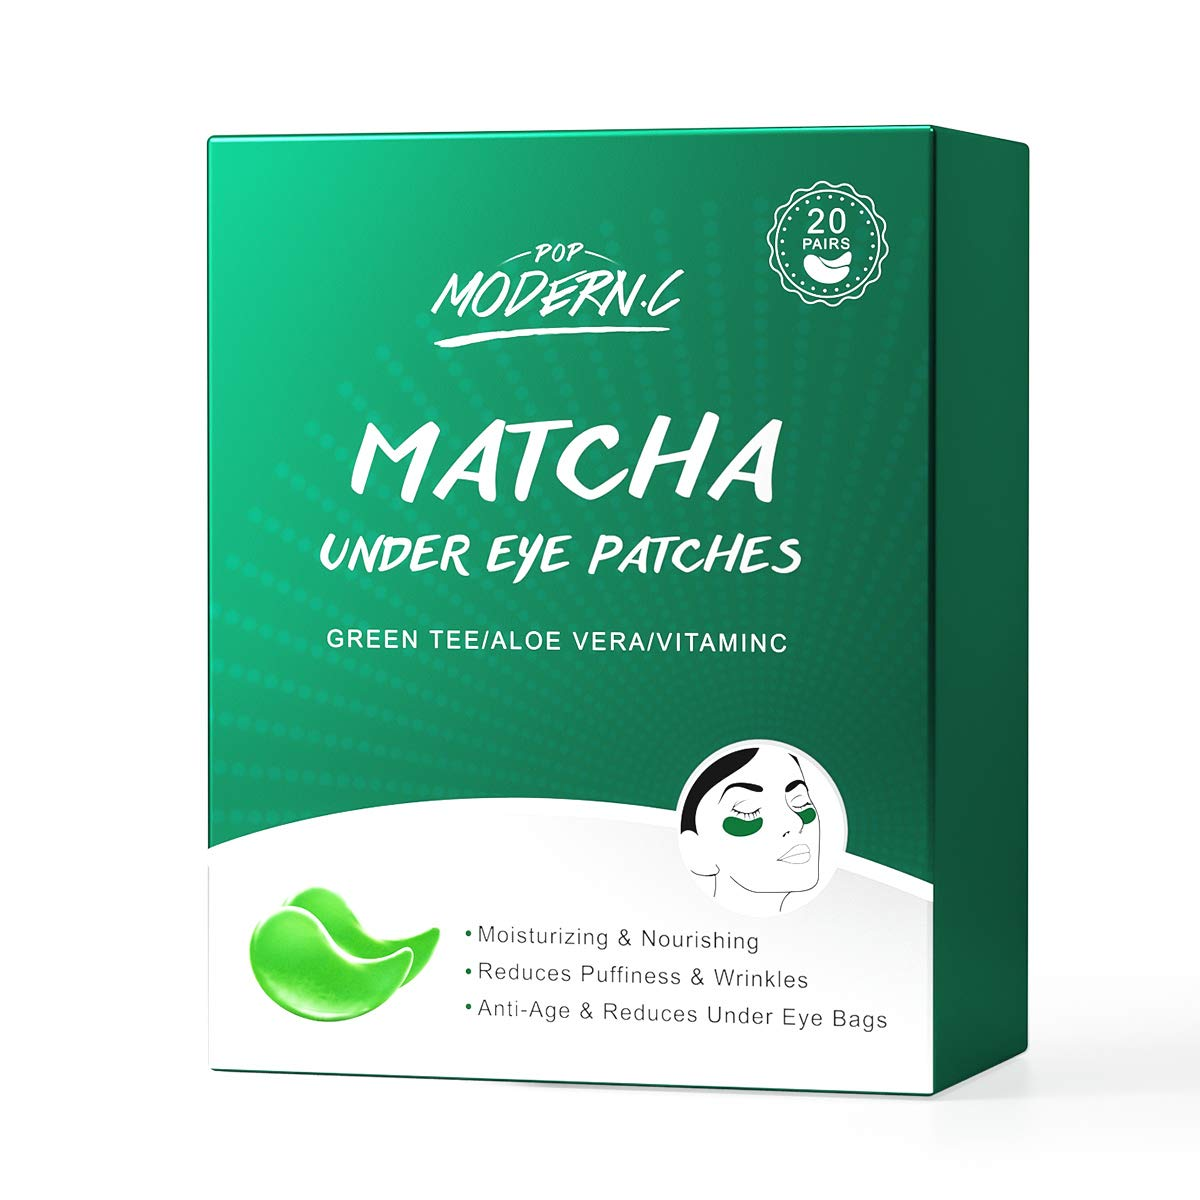 Under Eye Patches Matcha Under Eye Mask At Home Spa Skin Care Treatment Collagen Aloe Green Tea Eye Treatment Masks Eye Pads for Dark Circles Reducing Wrinkle & Puffiness Gift for Women Mother